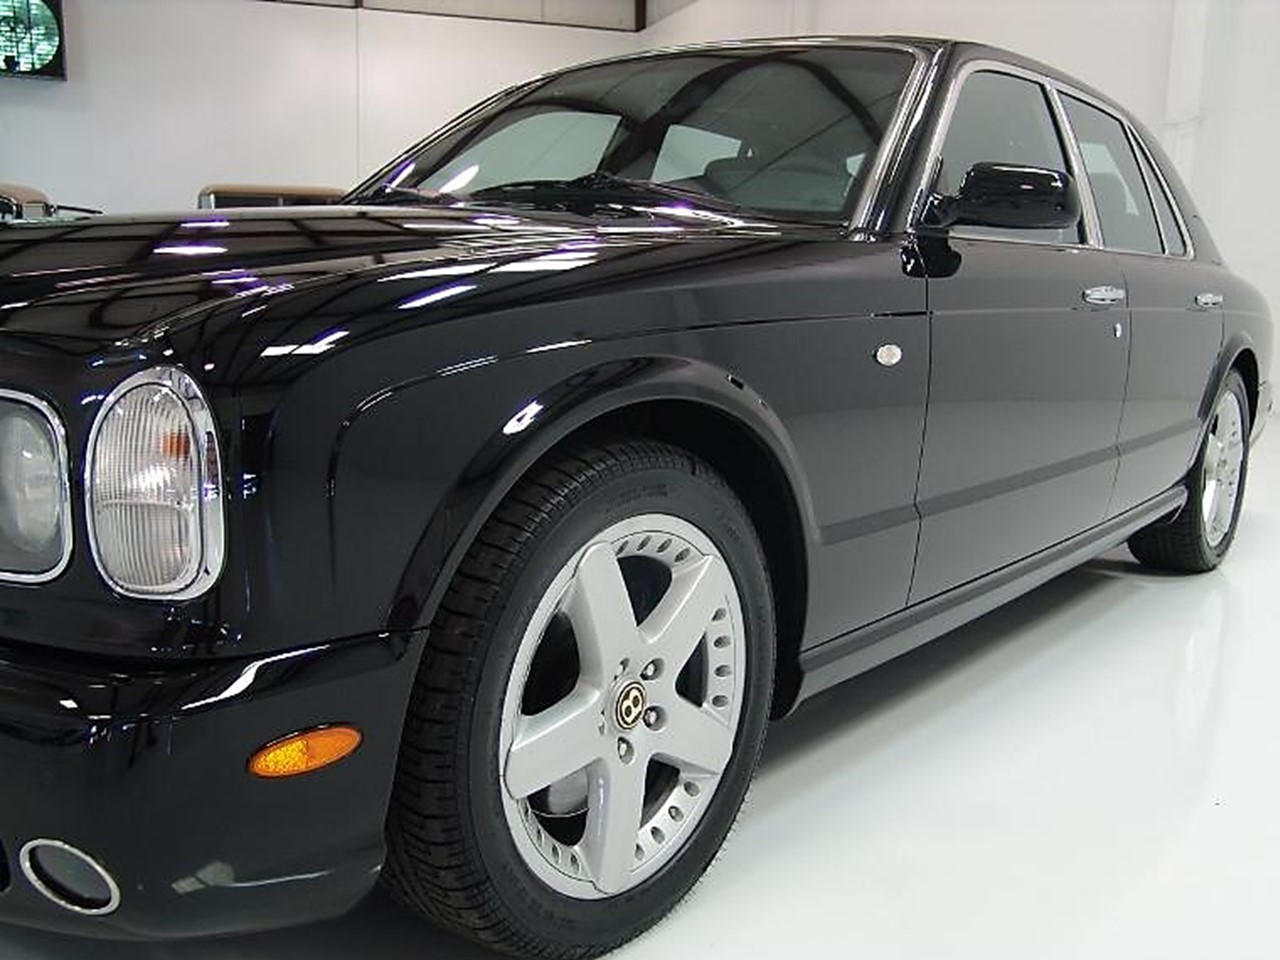 2003 bentley arnage t notoriousluxury the bentley arnage will be known in automotive history as the hatfield vs the mccoy edition this was the end of an erathe last traditional bentley that vanachro Choice Image